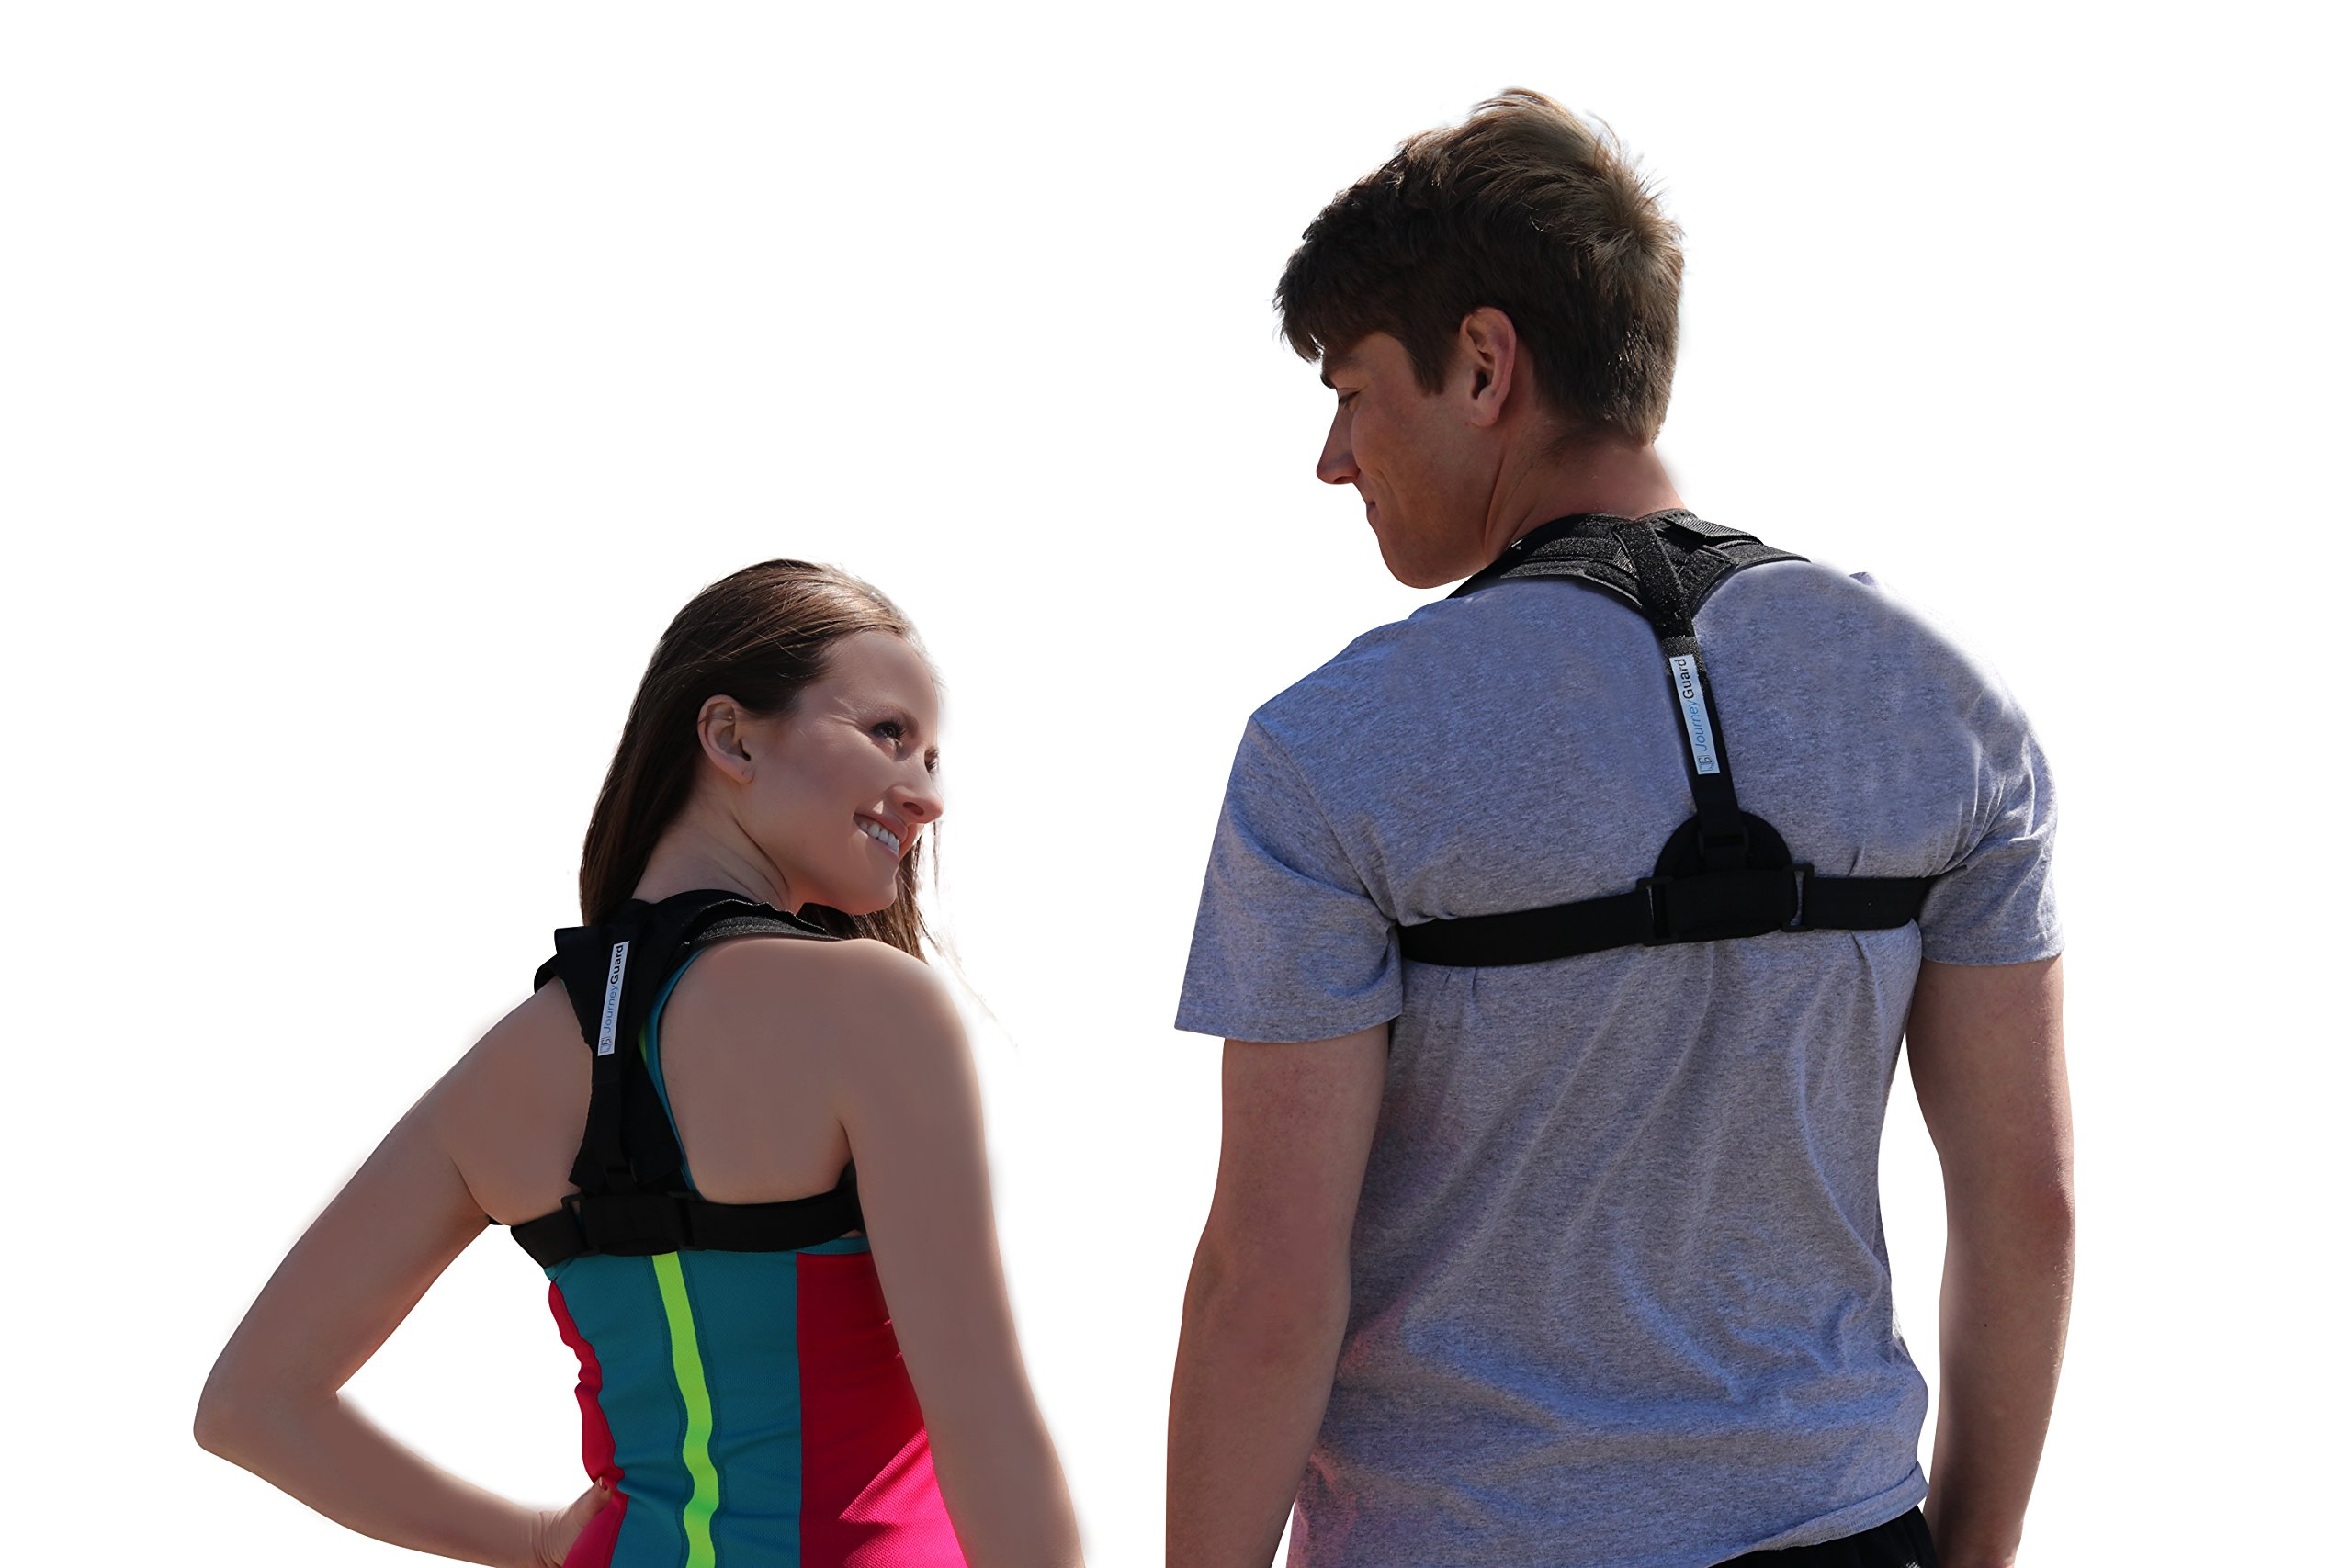 Journey Guard - Back Posture Corrector - Shoulder Brace for Men and Women - Neck and Upper Back Support, Posture Correction Under Clothes - Helps to Correct Posture, Slouching, and Back Pain